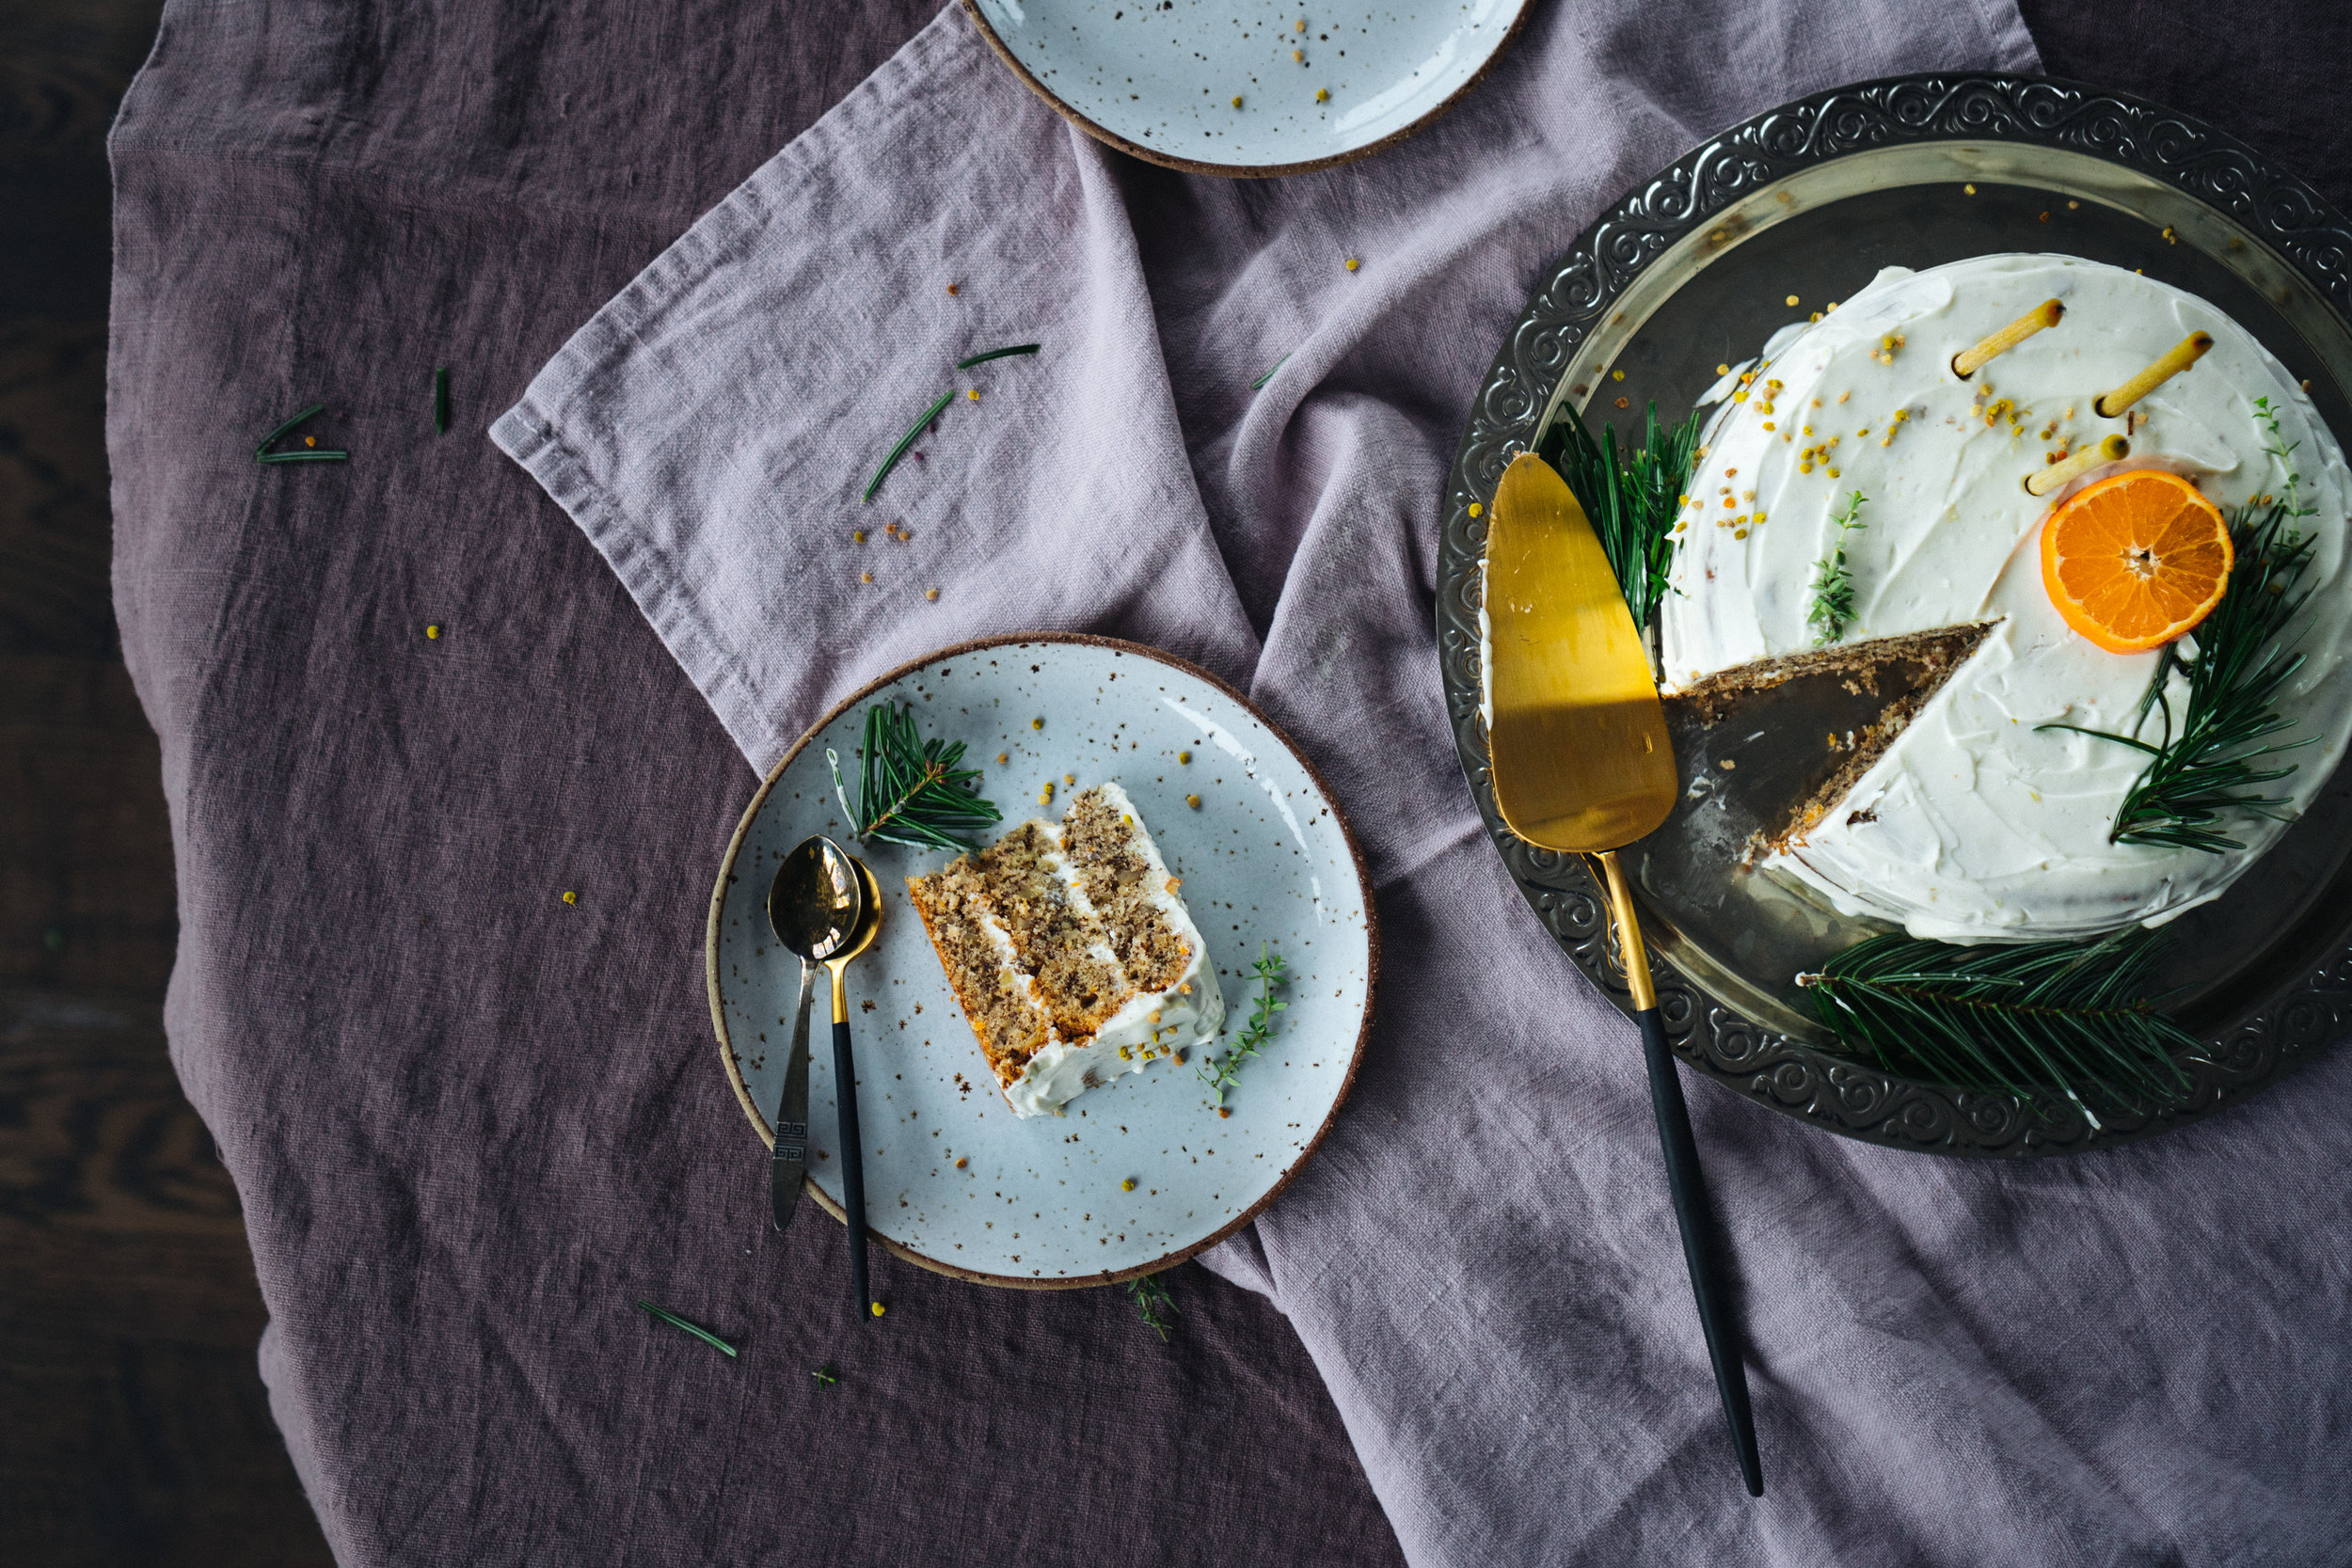 Spiced_Orange_Cake_with_Cream_cheese_Frosting-6.jpg